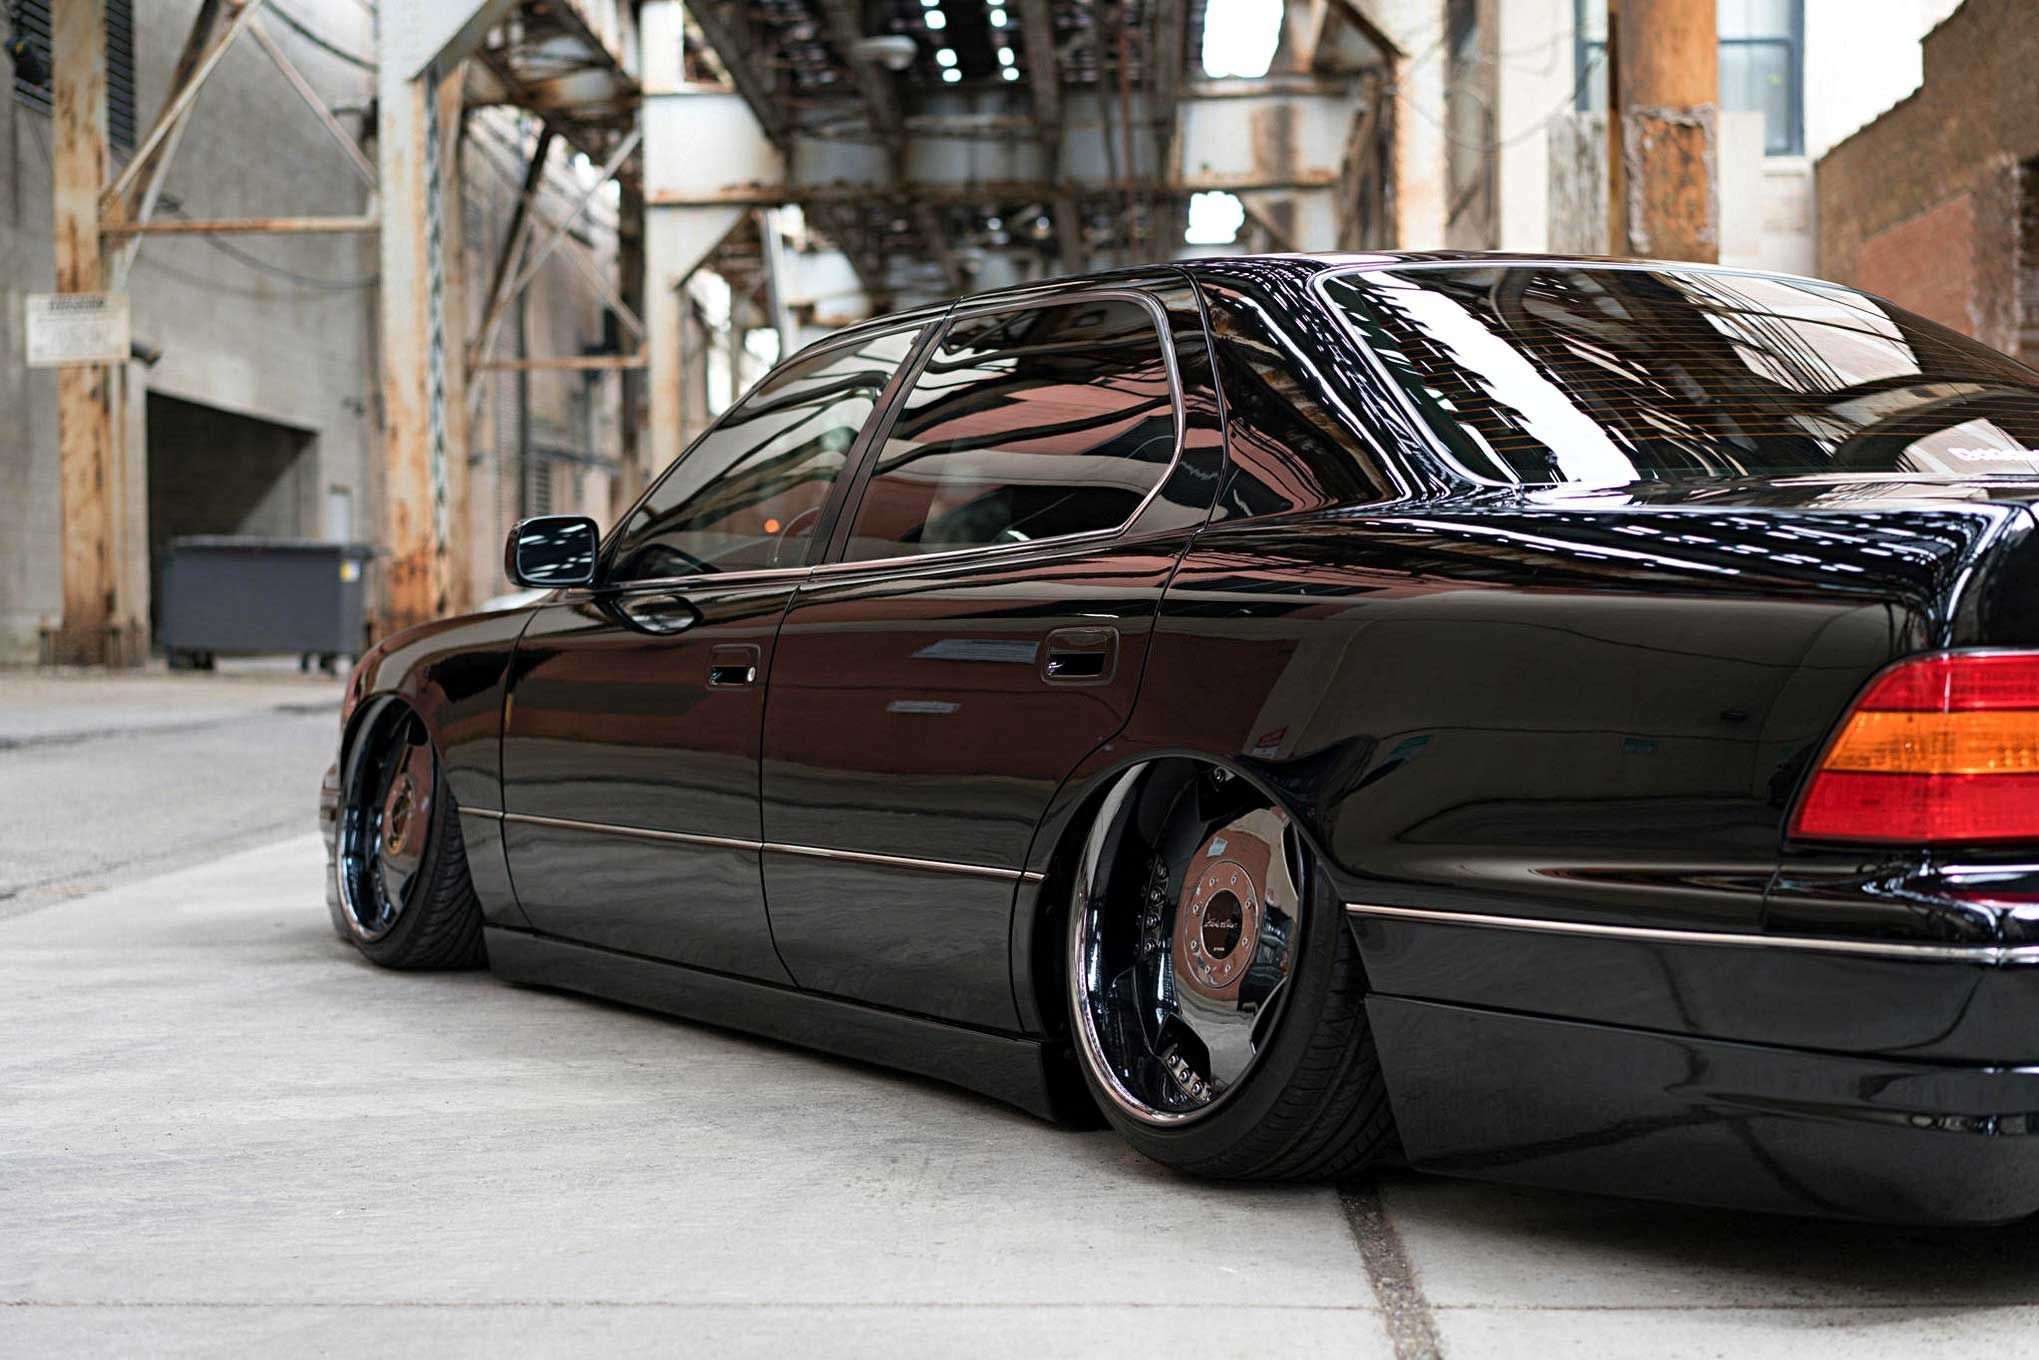 hight resolution of 2000 lexus ls400 work euroline dh wheels